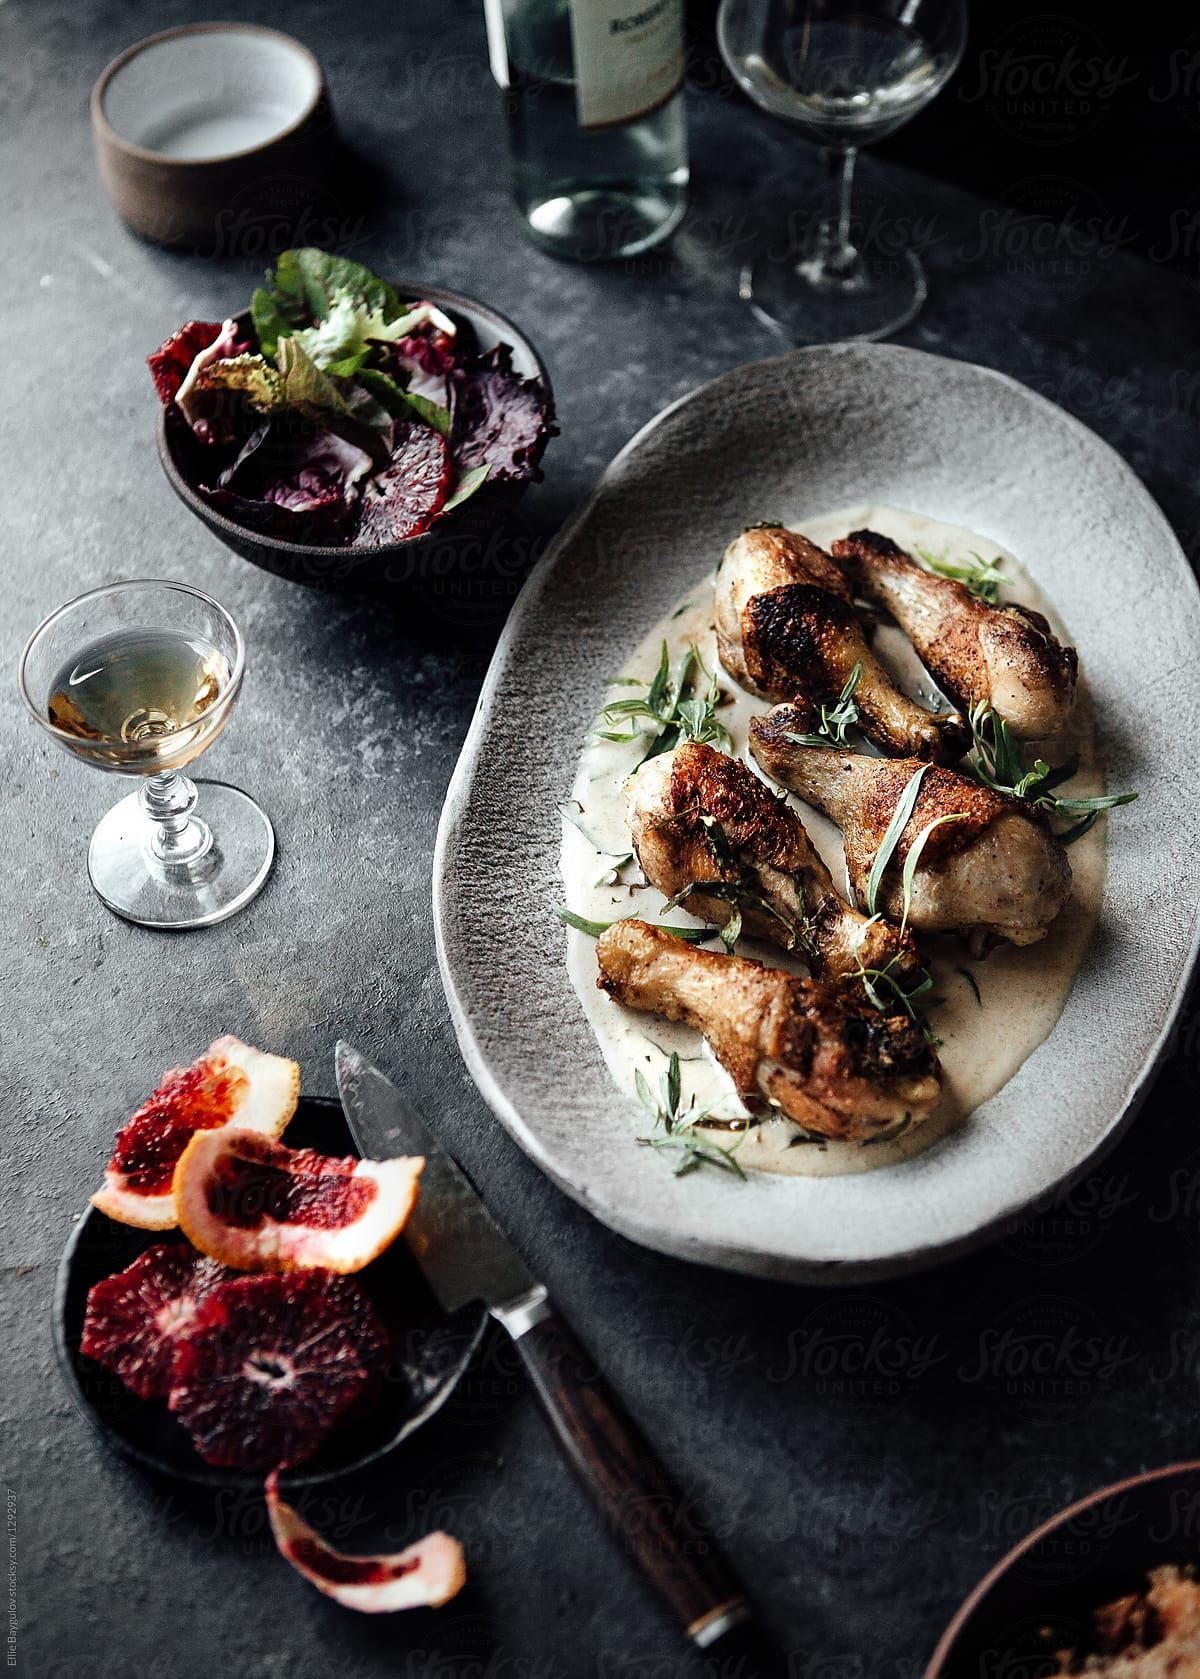 Tarragon Chicken Dish By Ellie Baygulov For Stocksy United Moody Food Photography Food Inspiration Dark Food Photography